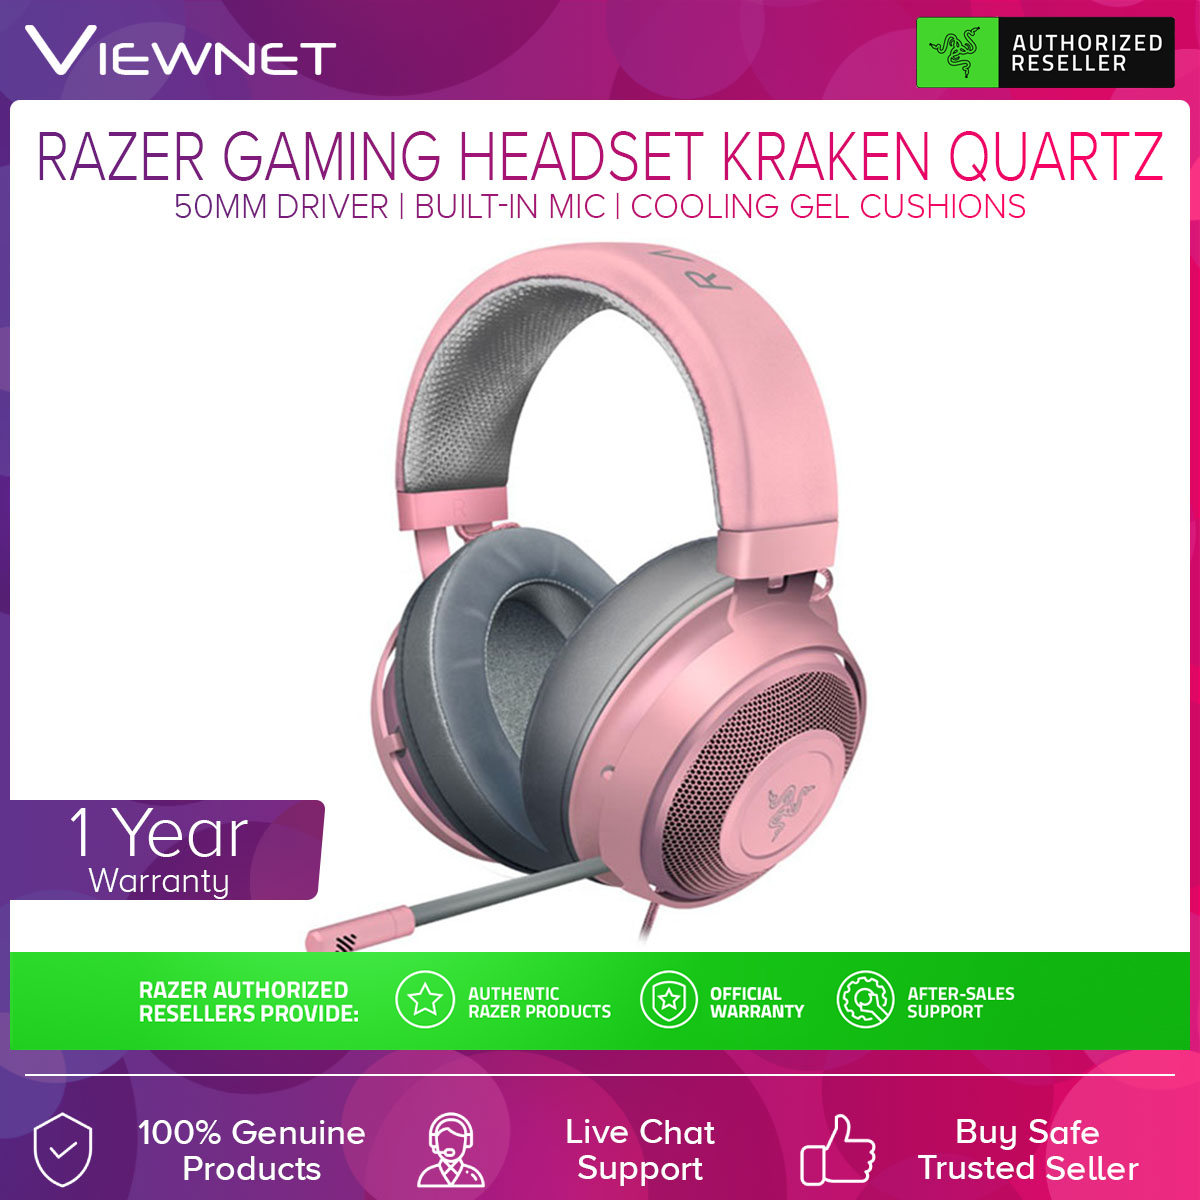 Razer Kraken Gaming Headset Gaming 2.1 (RZ04-02830300-R3M1 / RZ04-02830400-R3M1)  (Quartz / Mercury) with 50MM Driver, Colling Gel Cushions, Aluminum Frame, Thicker Headband Padding, Built-In Mic, Cross-Platform Compatibility